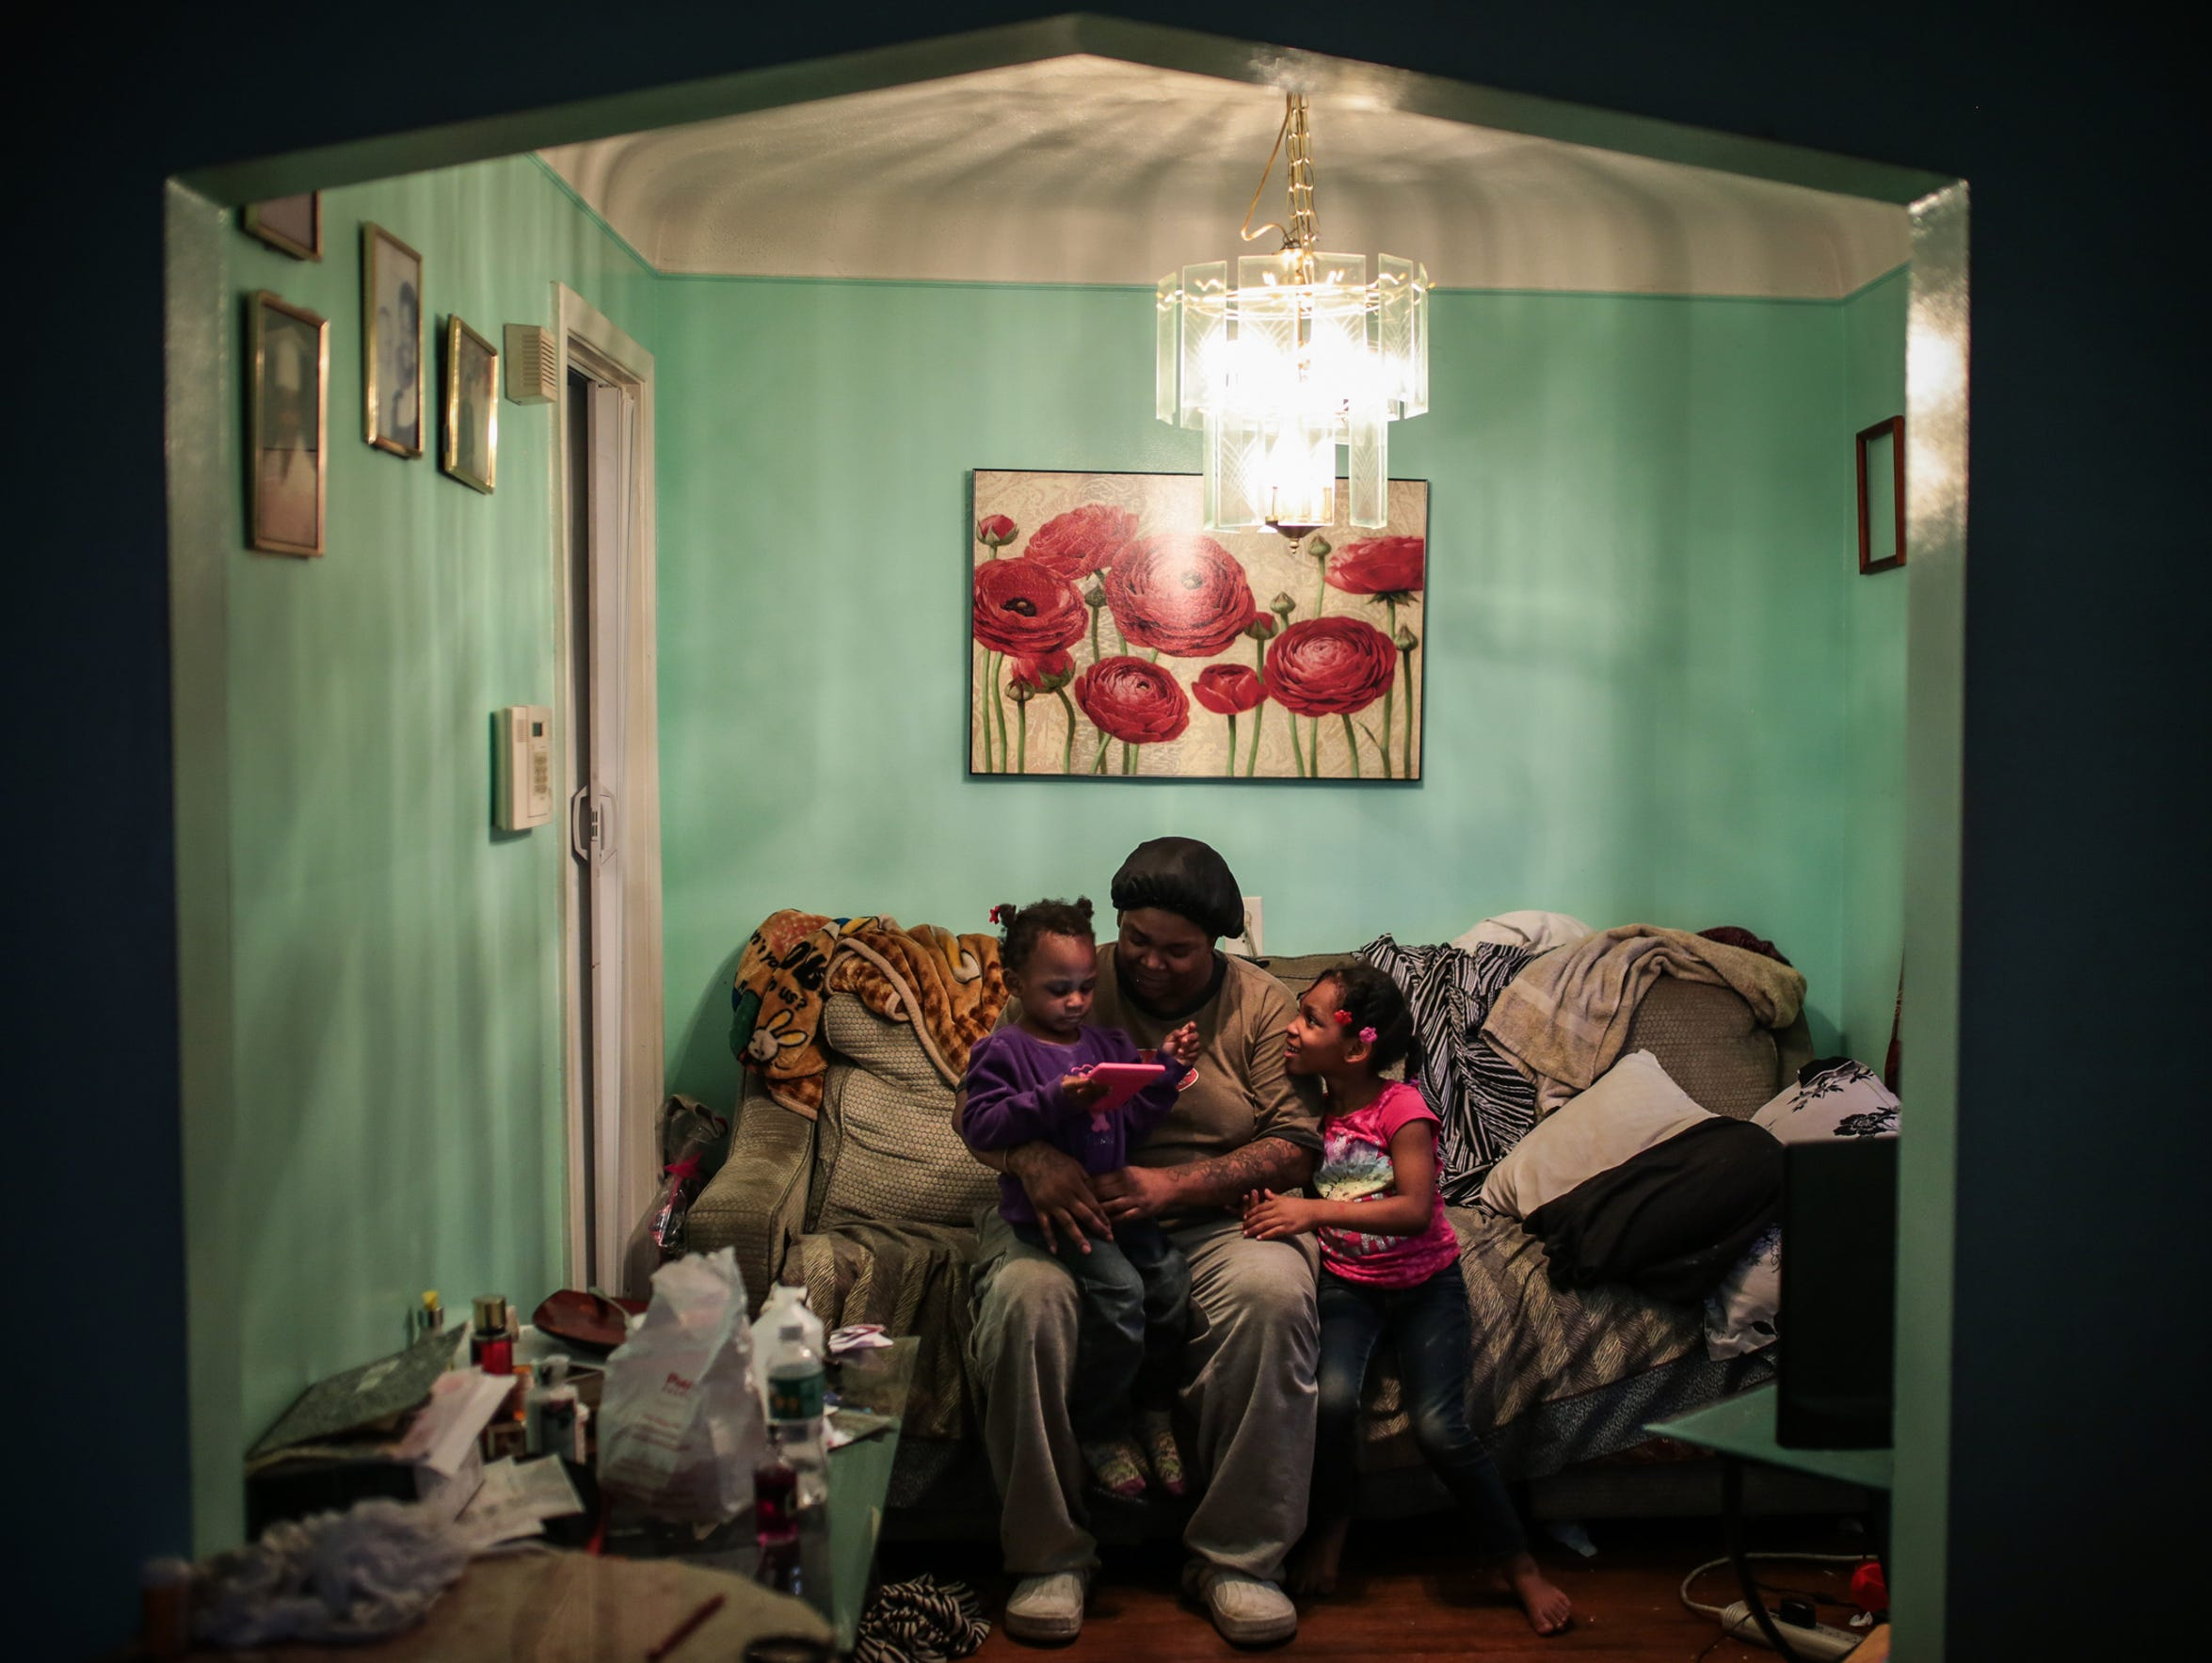 Tatiana Young, 29, of Detroit, sits in a living room